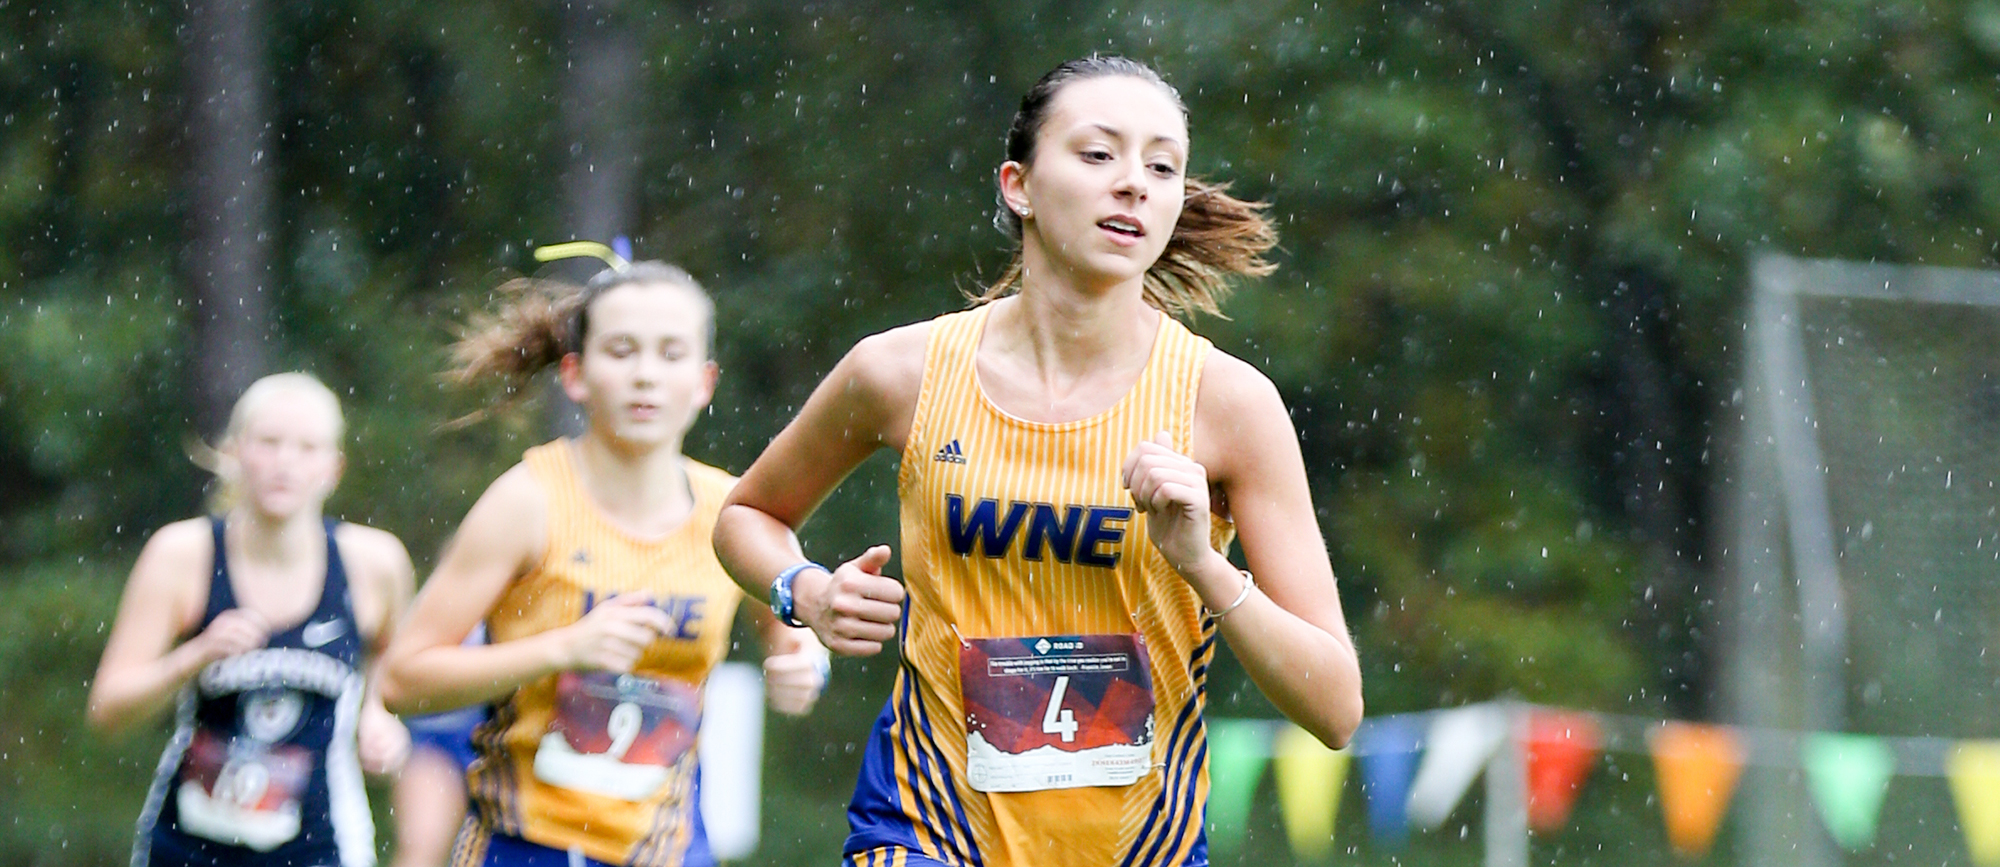 Senior Meagan Dias led the Golden Bears with a 169th place finish in her final collegiate race on Saturday at the New England Regional Championship. (Photo by Chris Marion)